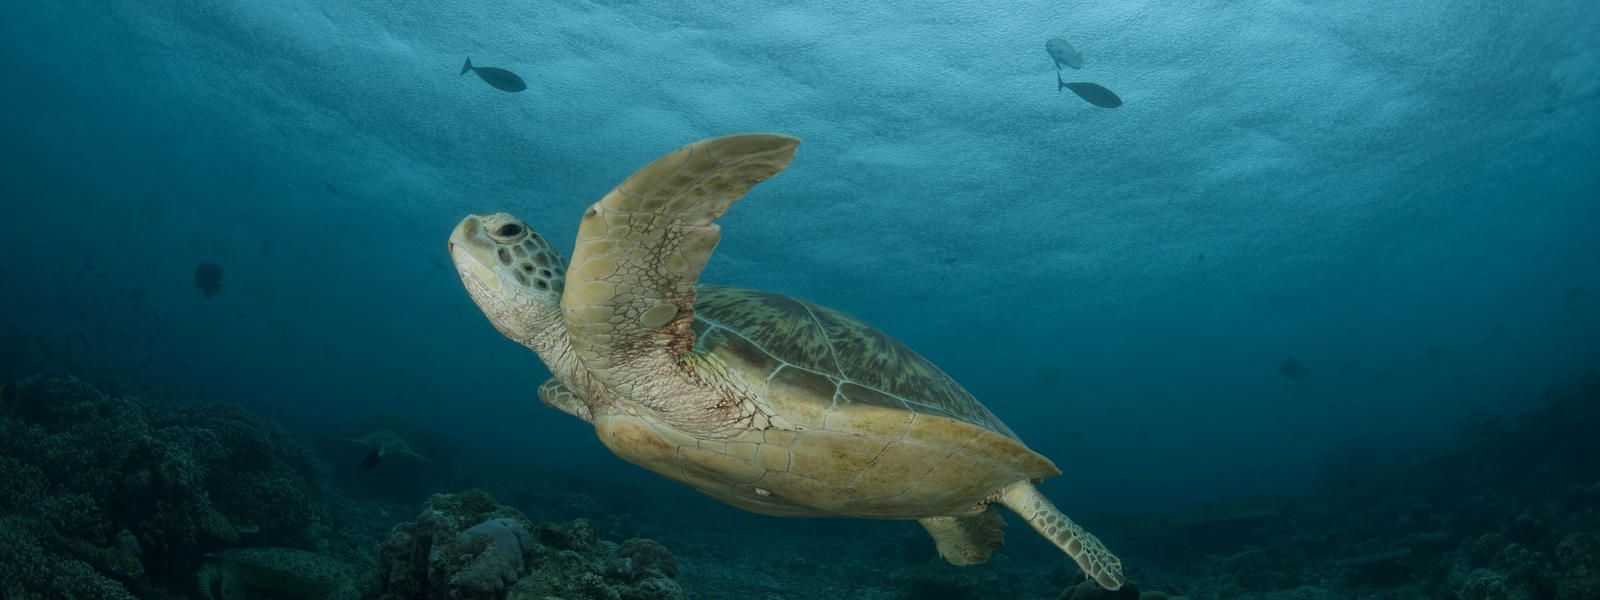 Learn About The Green Sea Turtle As Well As The Threats This